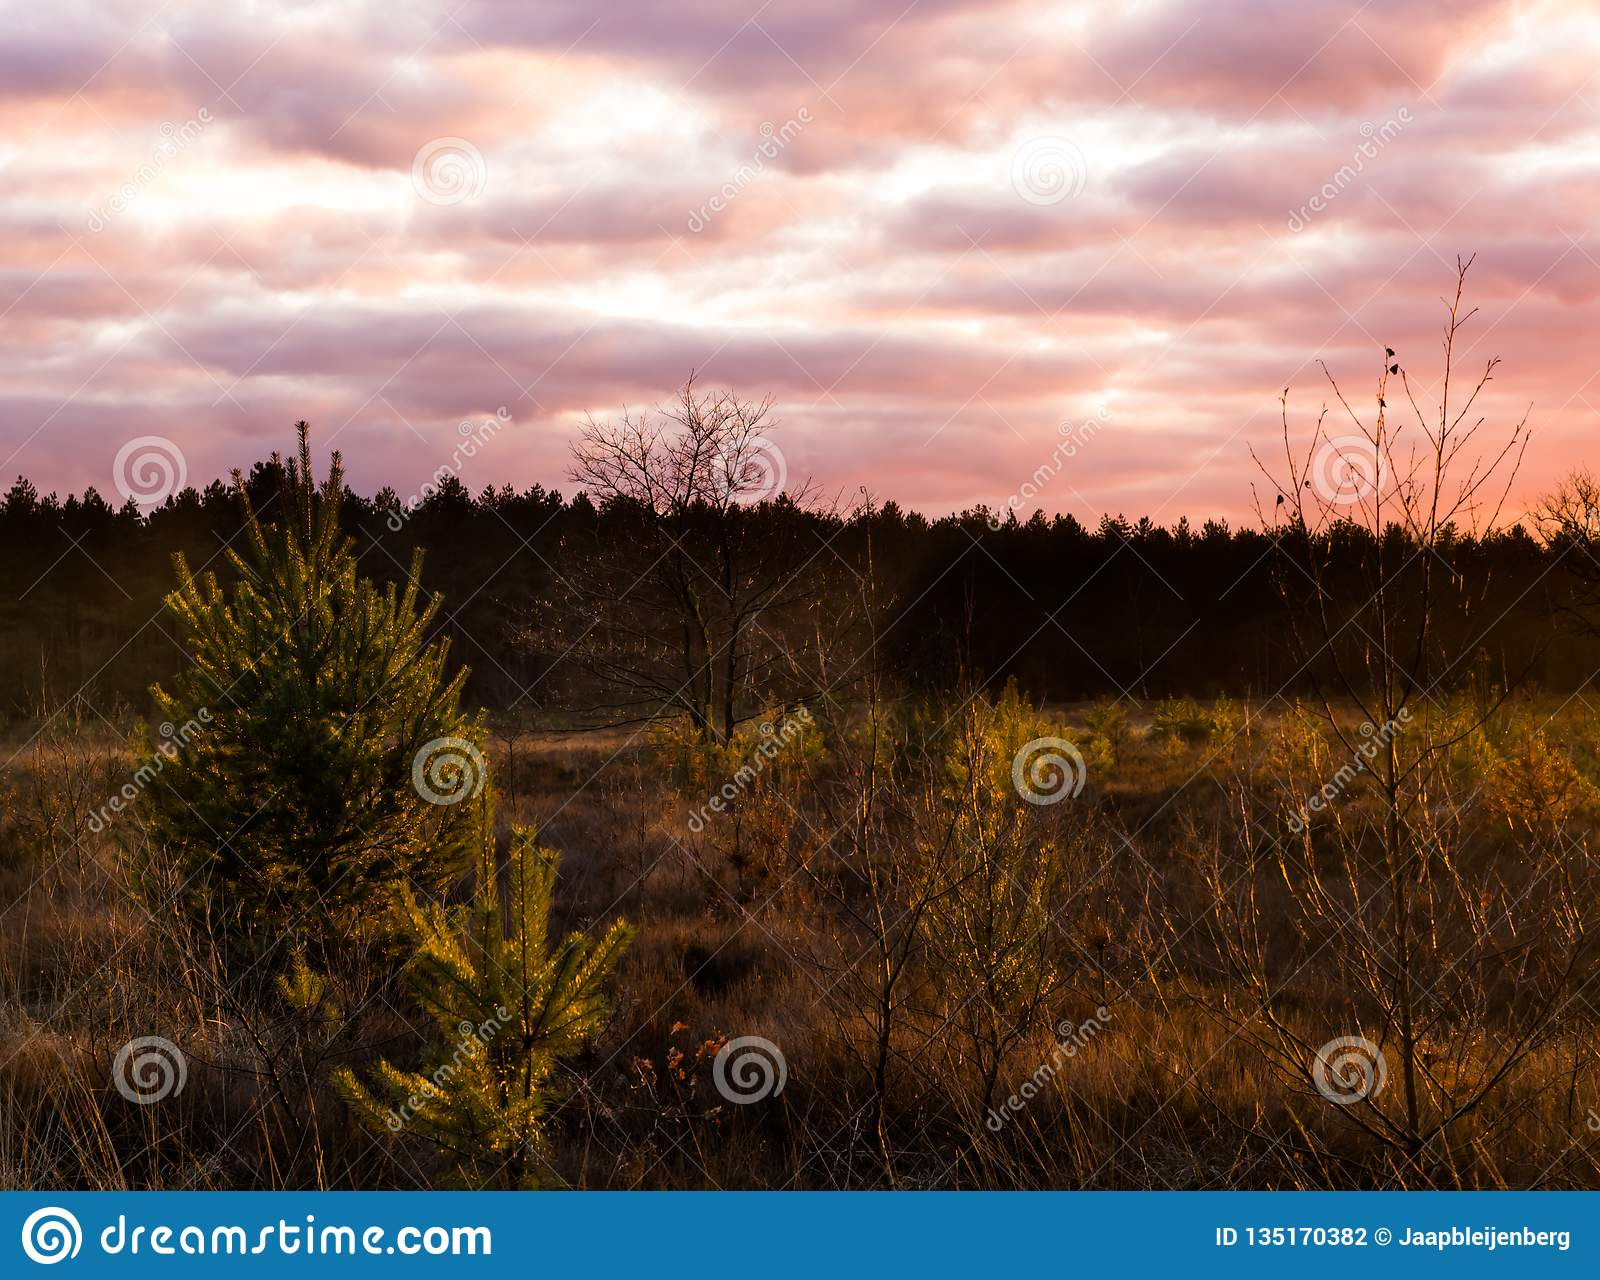 Sundown in a heather landscape with nacreous clouds, a colorful weather phenomenon that rarely occurs in winter